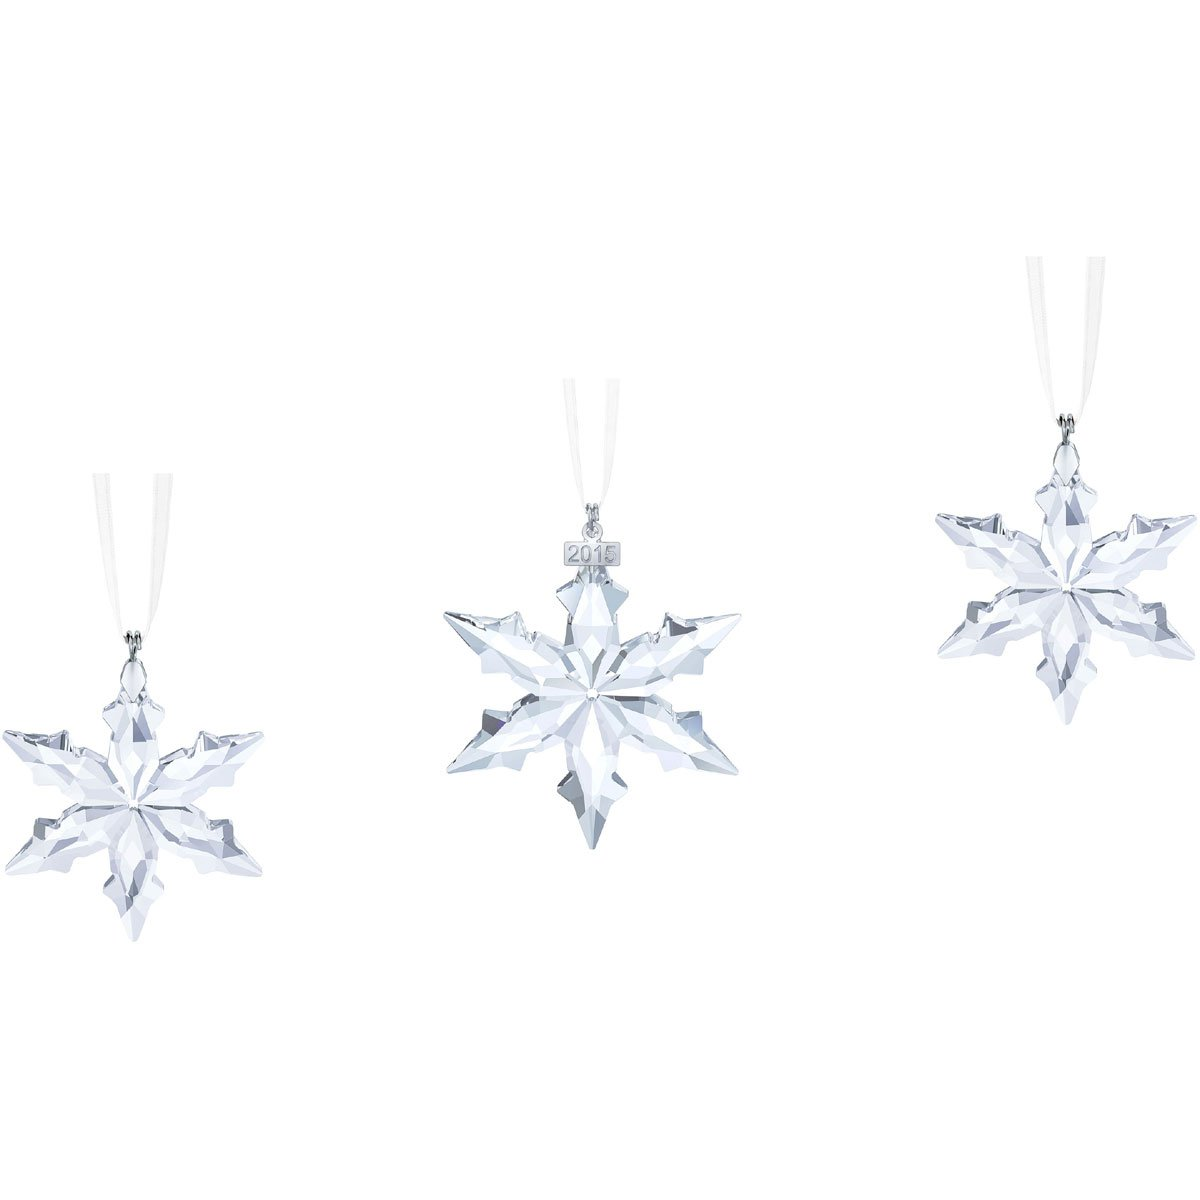 Swarovski Weihnachtsornament Set, Glas, Transparent